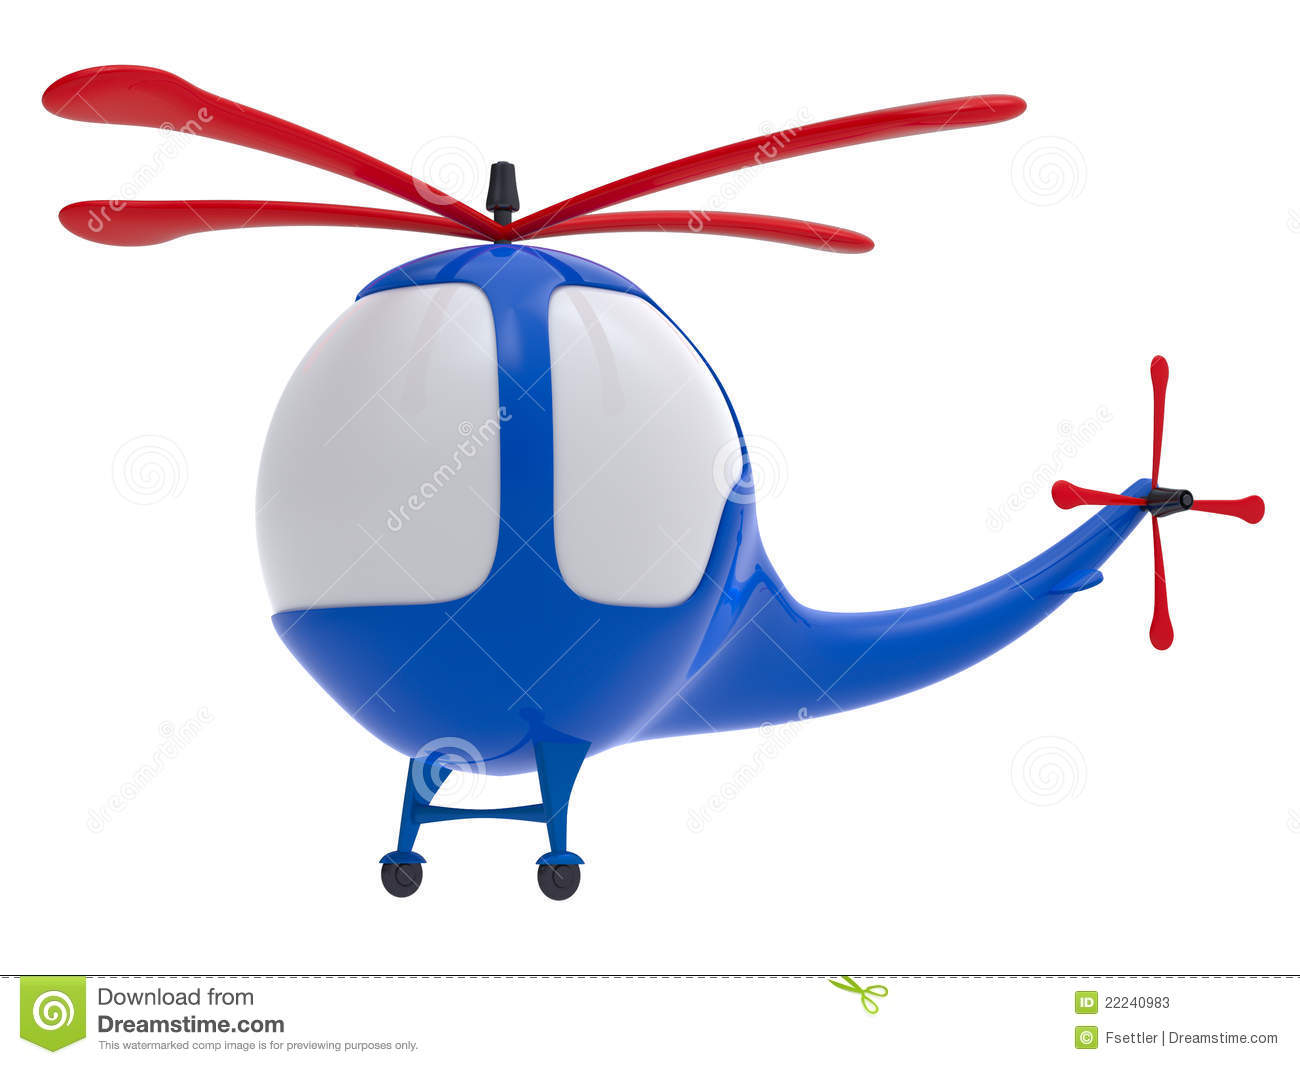 wooden helicopter toy plans with Stock Photos Cartoon Toy Helicopter Image22240983 on Childrens Wooden Toy Plans And Projects furthermore 556335360201892823 likewise 18t8L1R 85q188bv as well 254594185163599623 likewise 2306 Carving Teddy Bear Wood Carving Patterns.